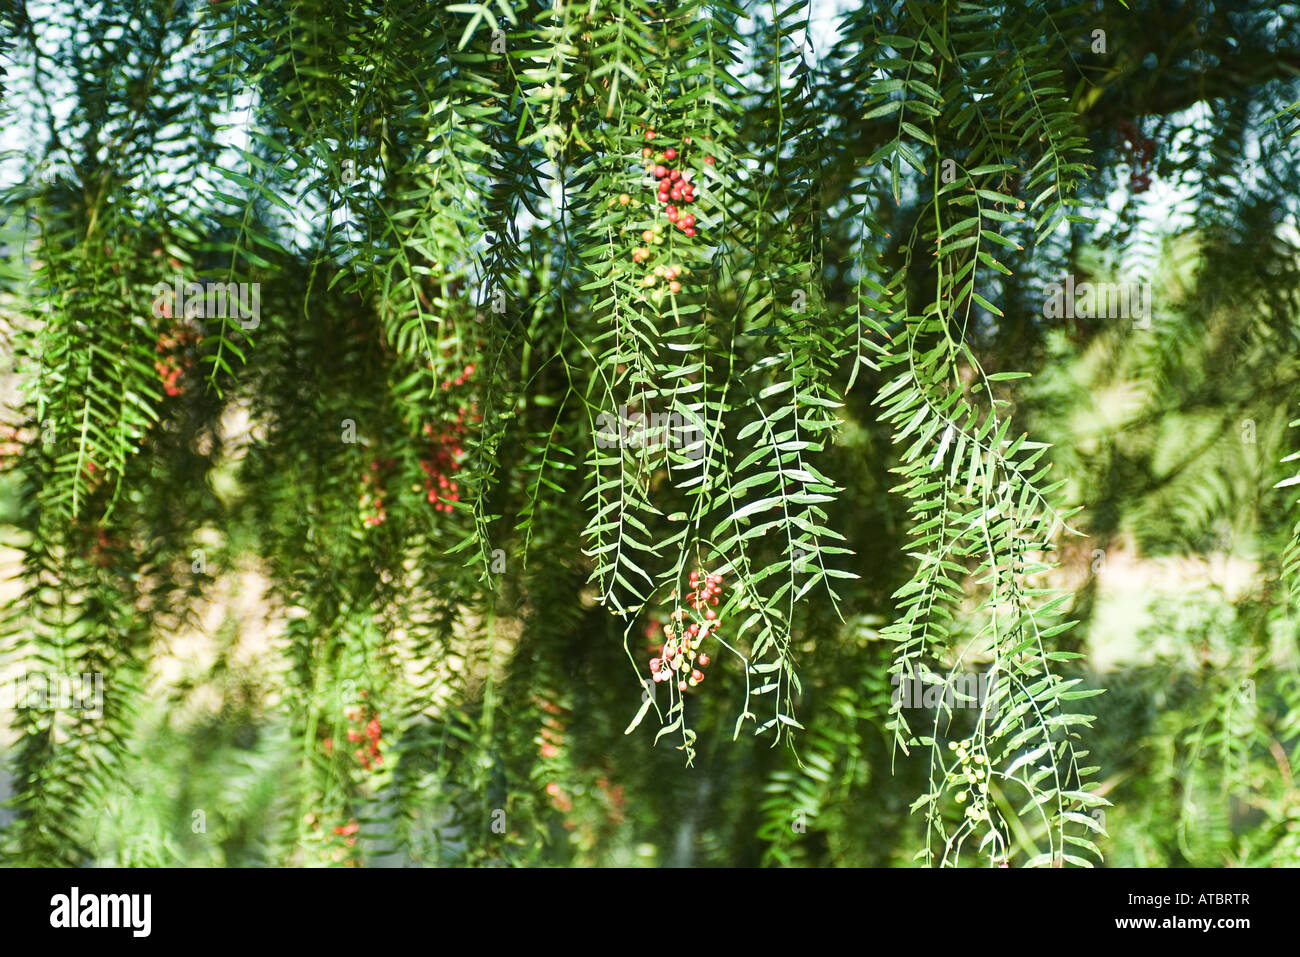 Foliage and red berries - Stock Image